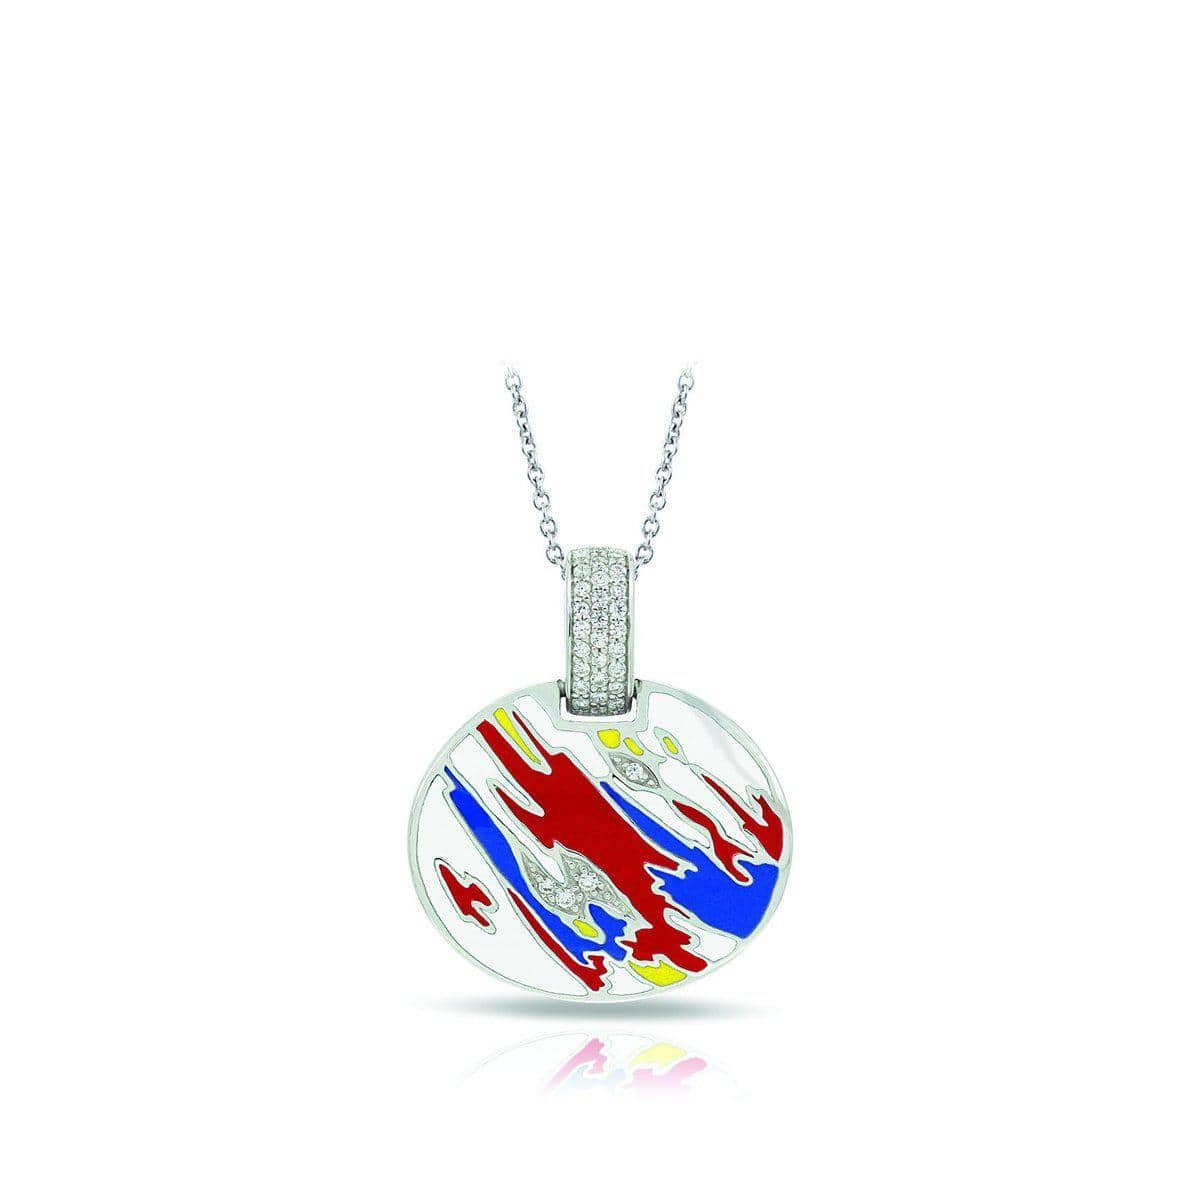 Palette Red, Blue, and Yellow Pendant-Belle Etoile-Renee Taylor Gallery